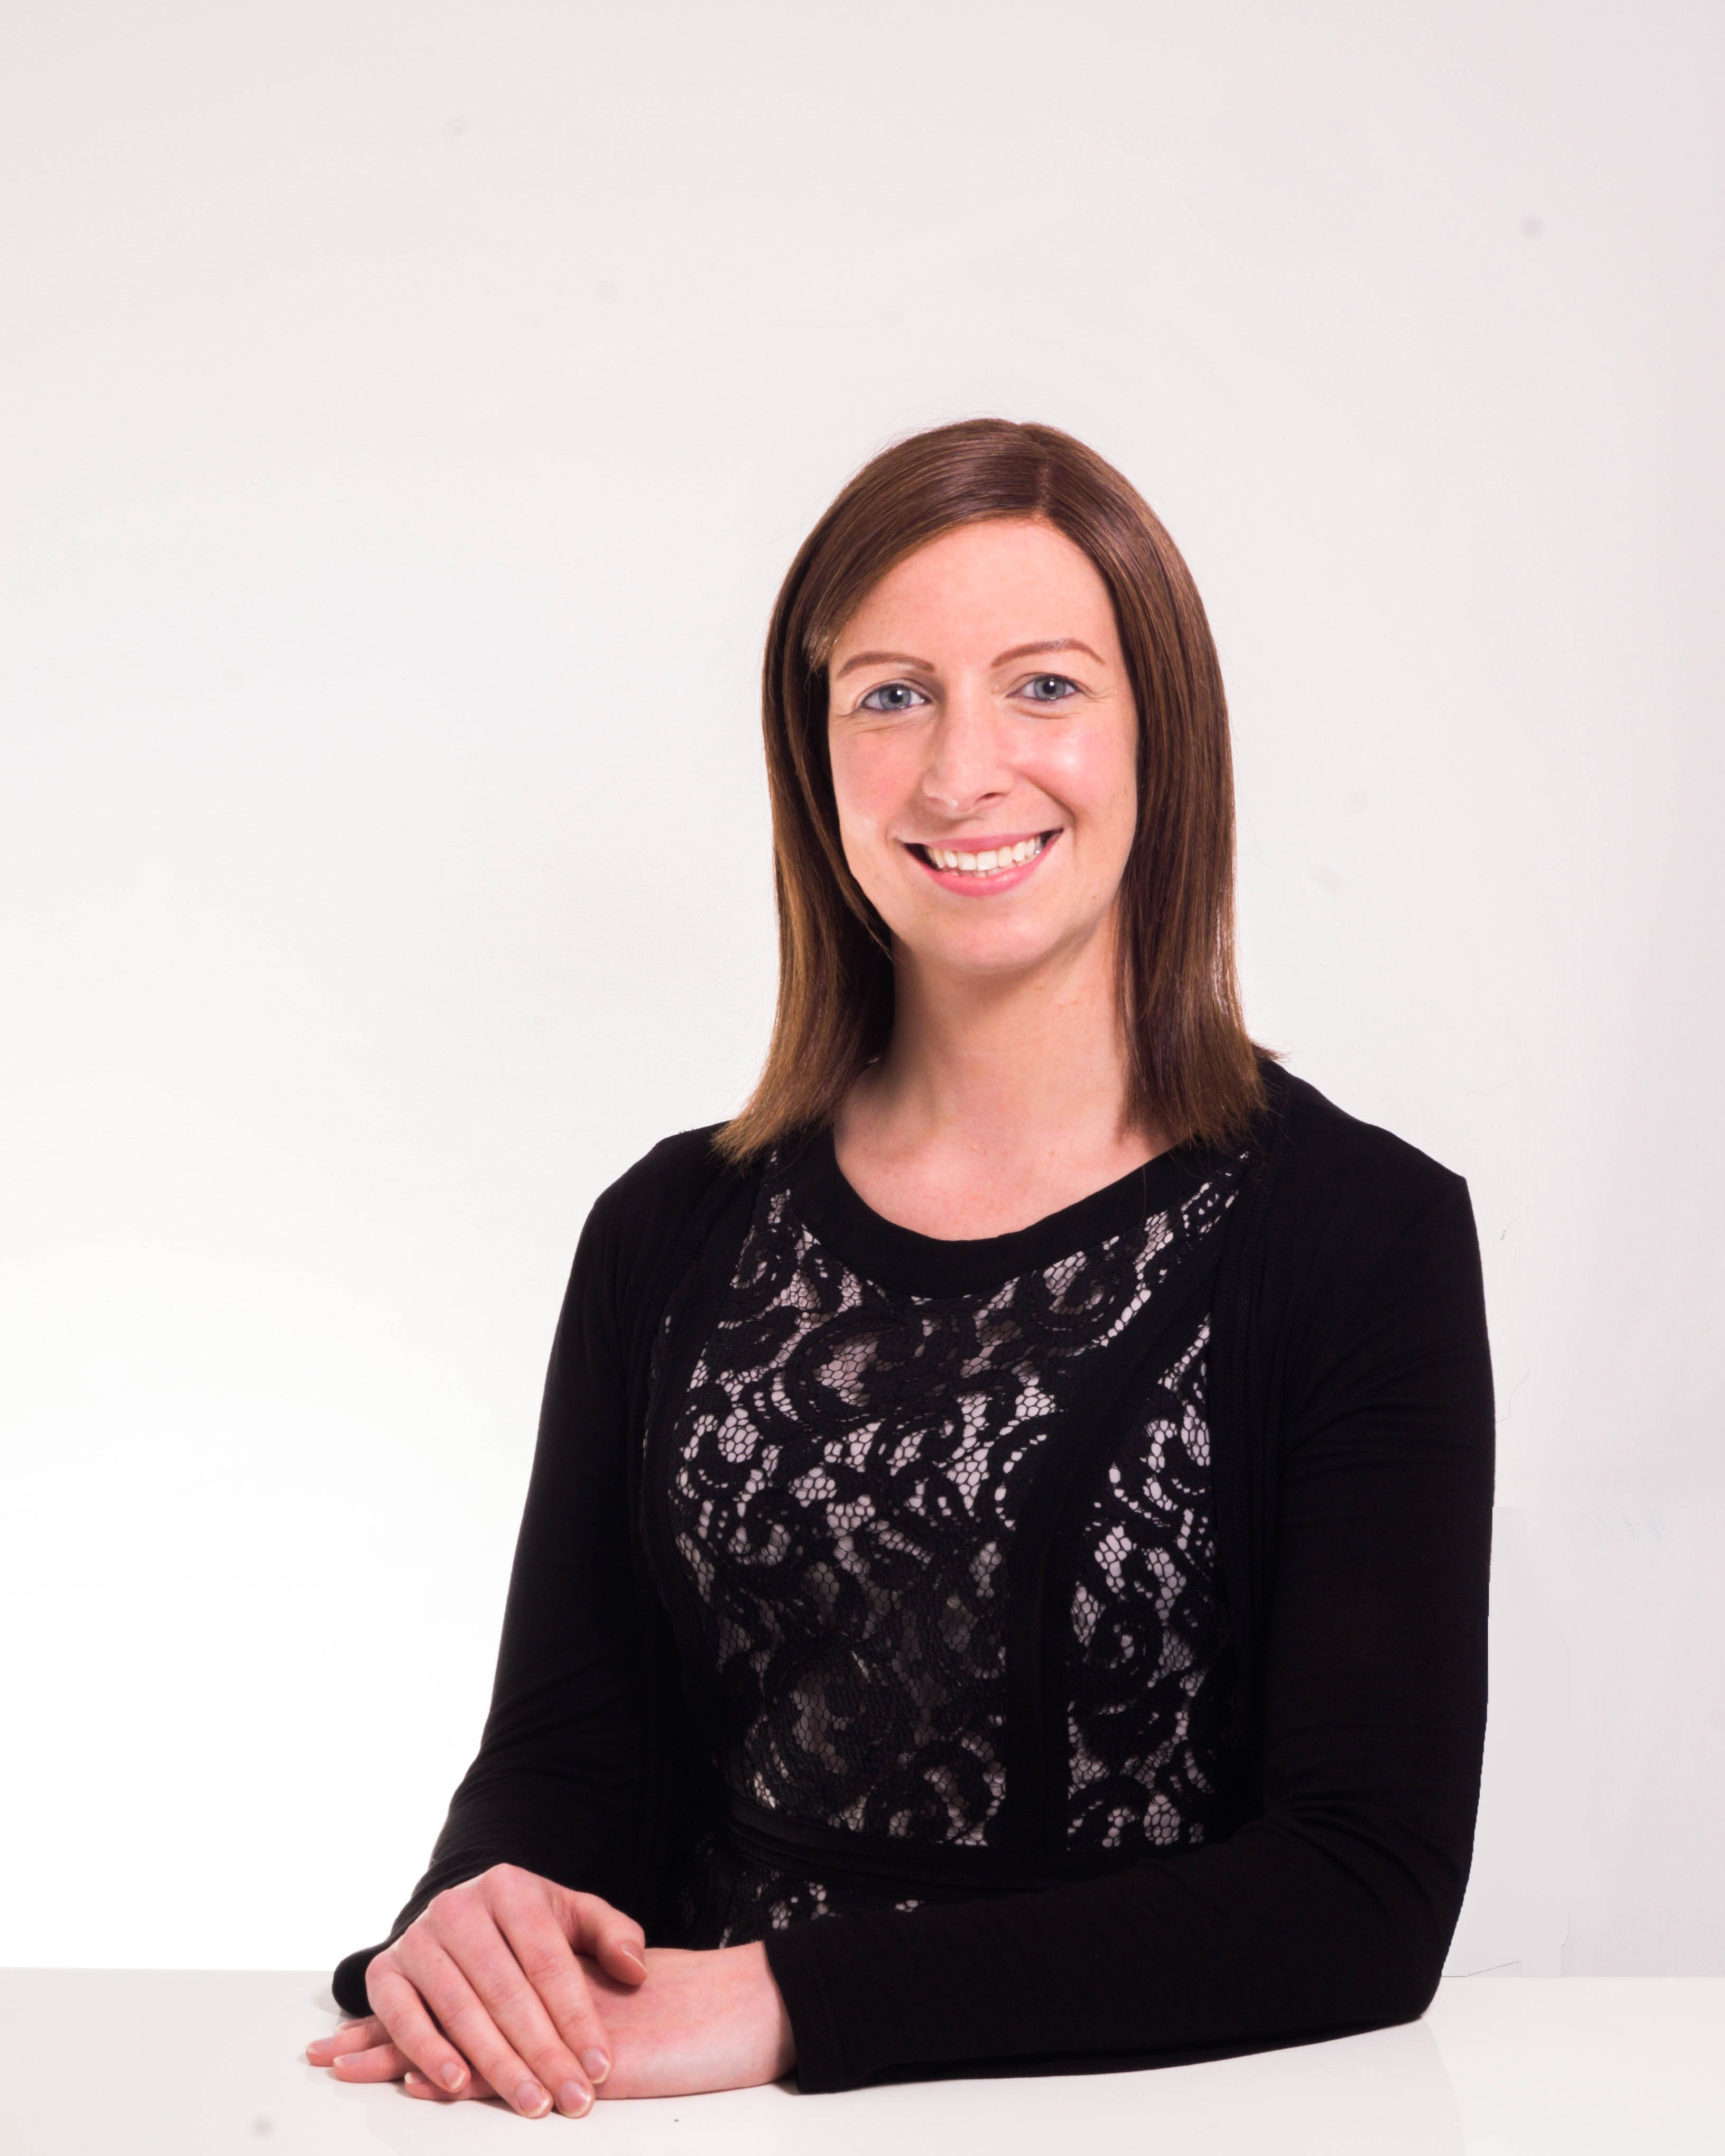 FlowForma - Aoife Harte, Financial Controller and Business Process Expert